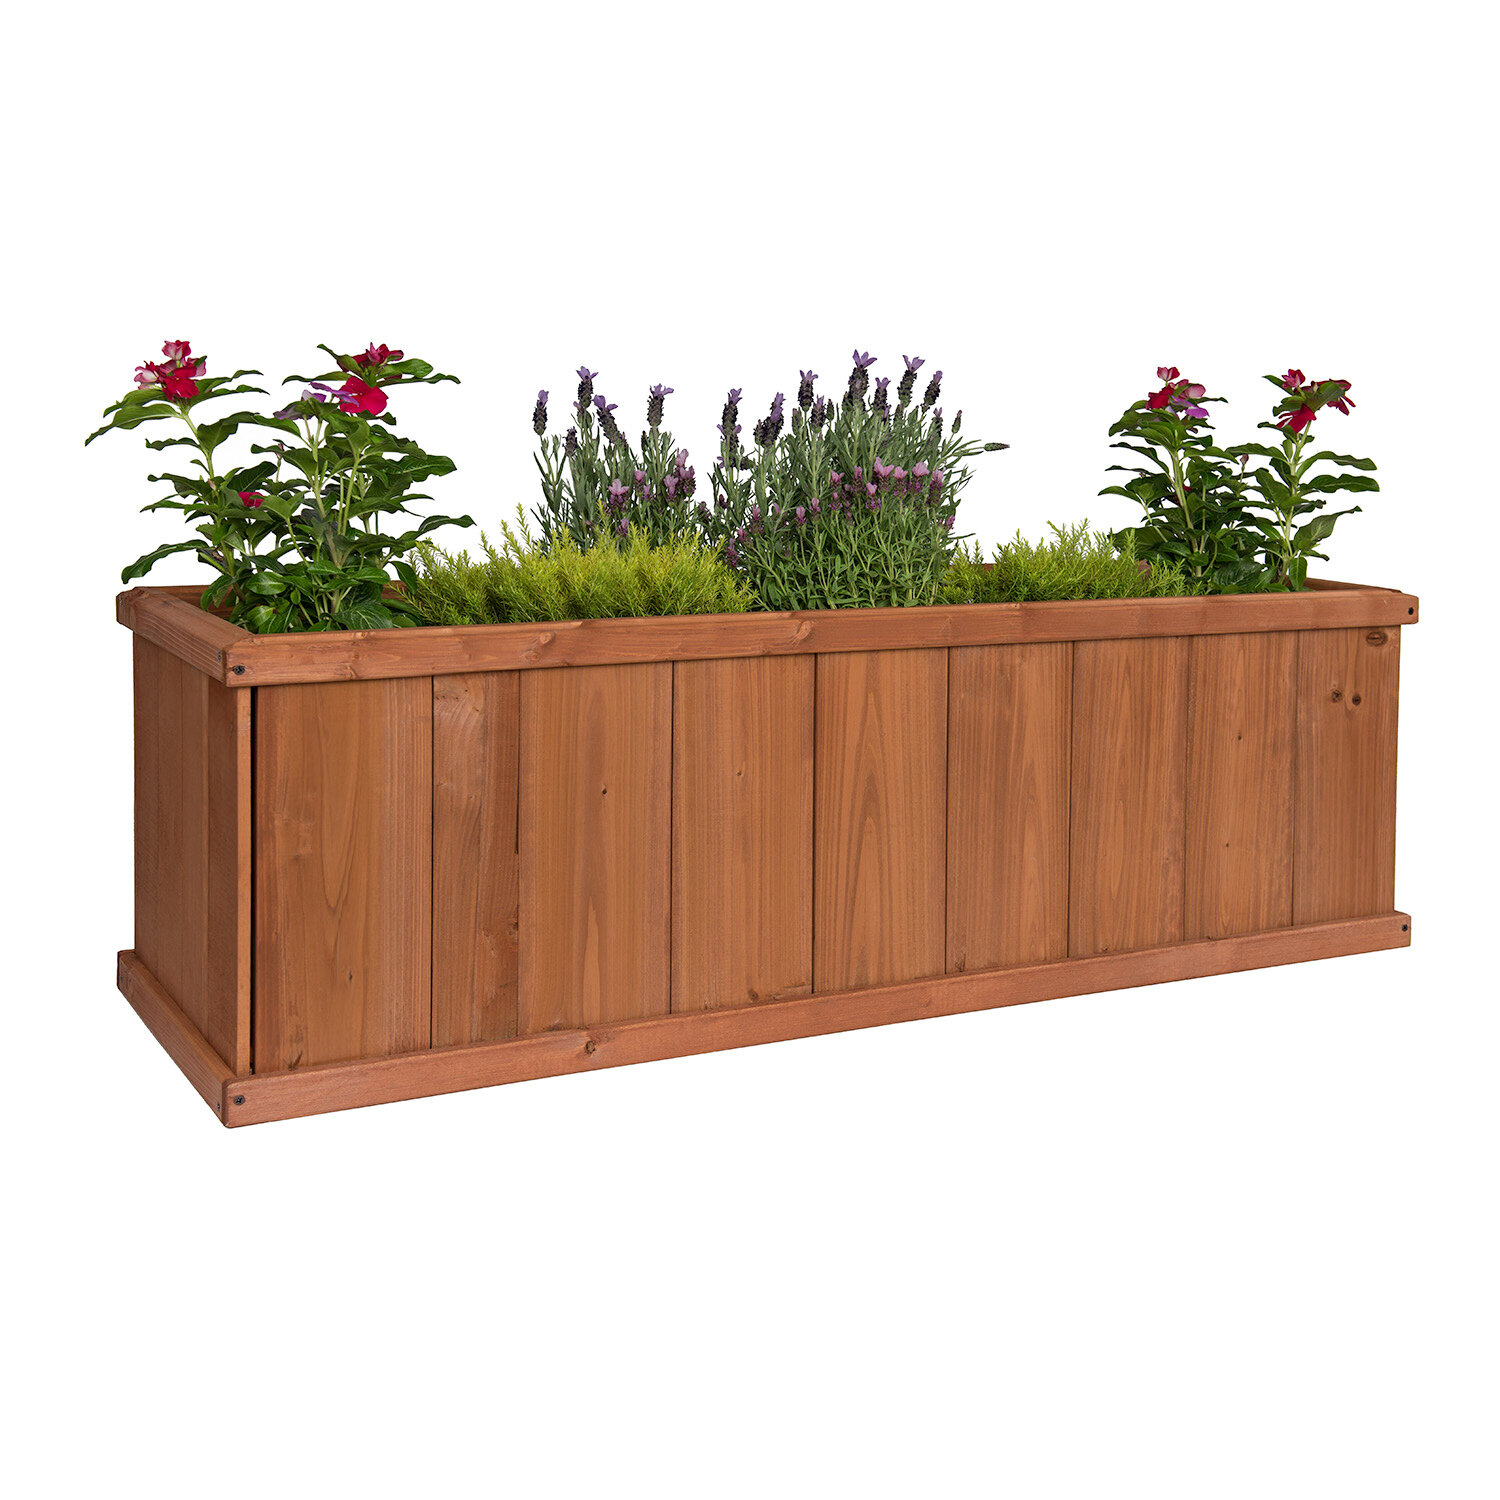 cedar planter i pocket wife yes did like for am the boxes of use holes heathen and r woodworking comments